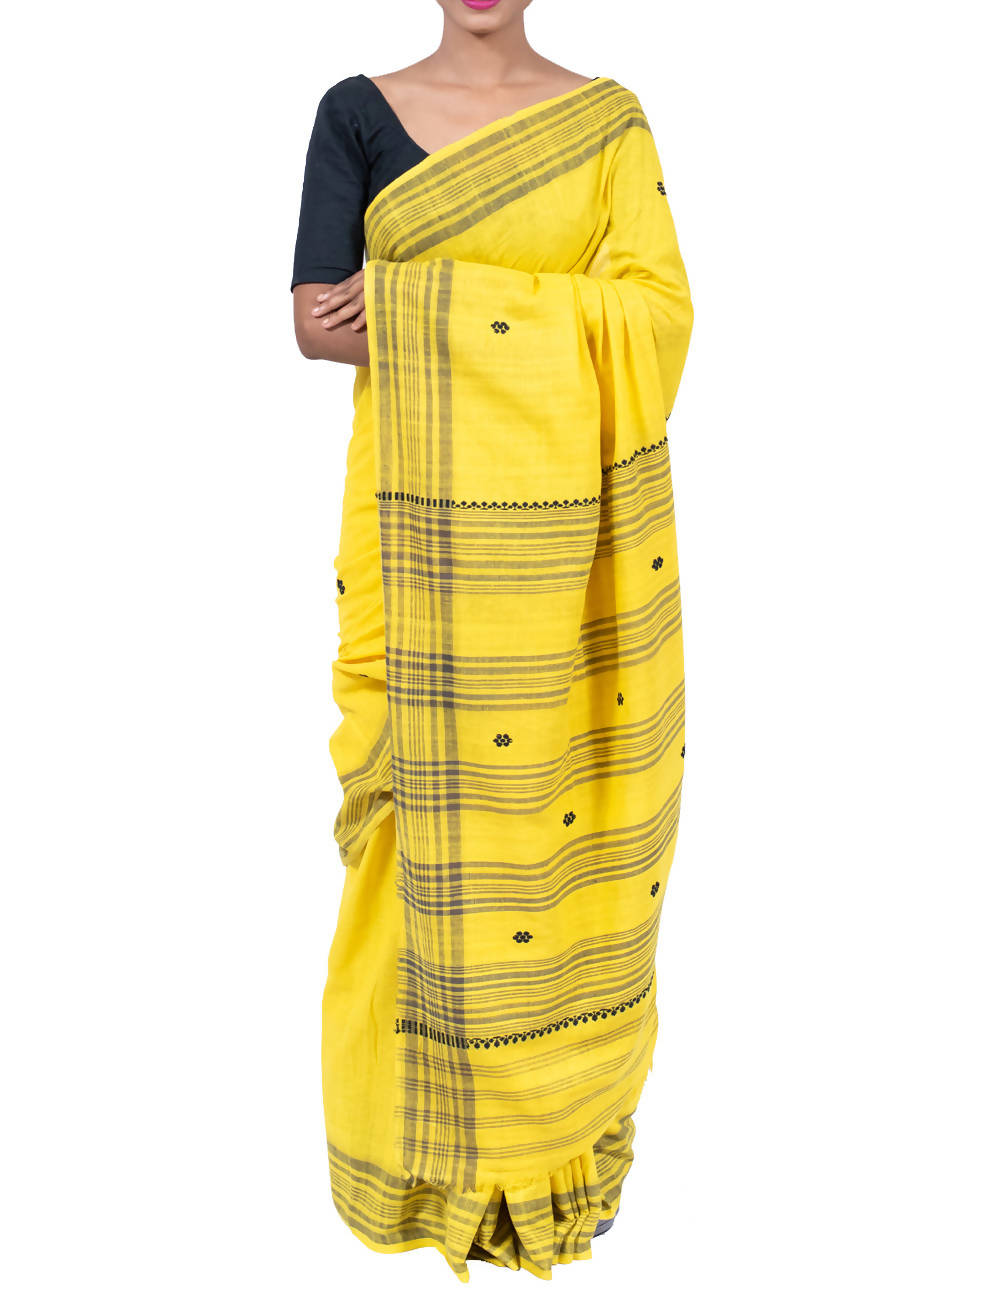 Organically Dyed Yellow Assam Handloom Eri Silk Saree